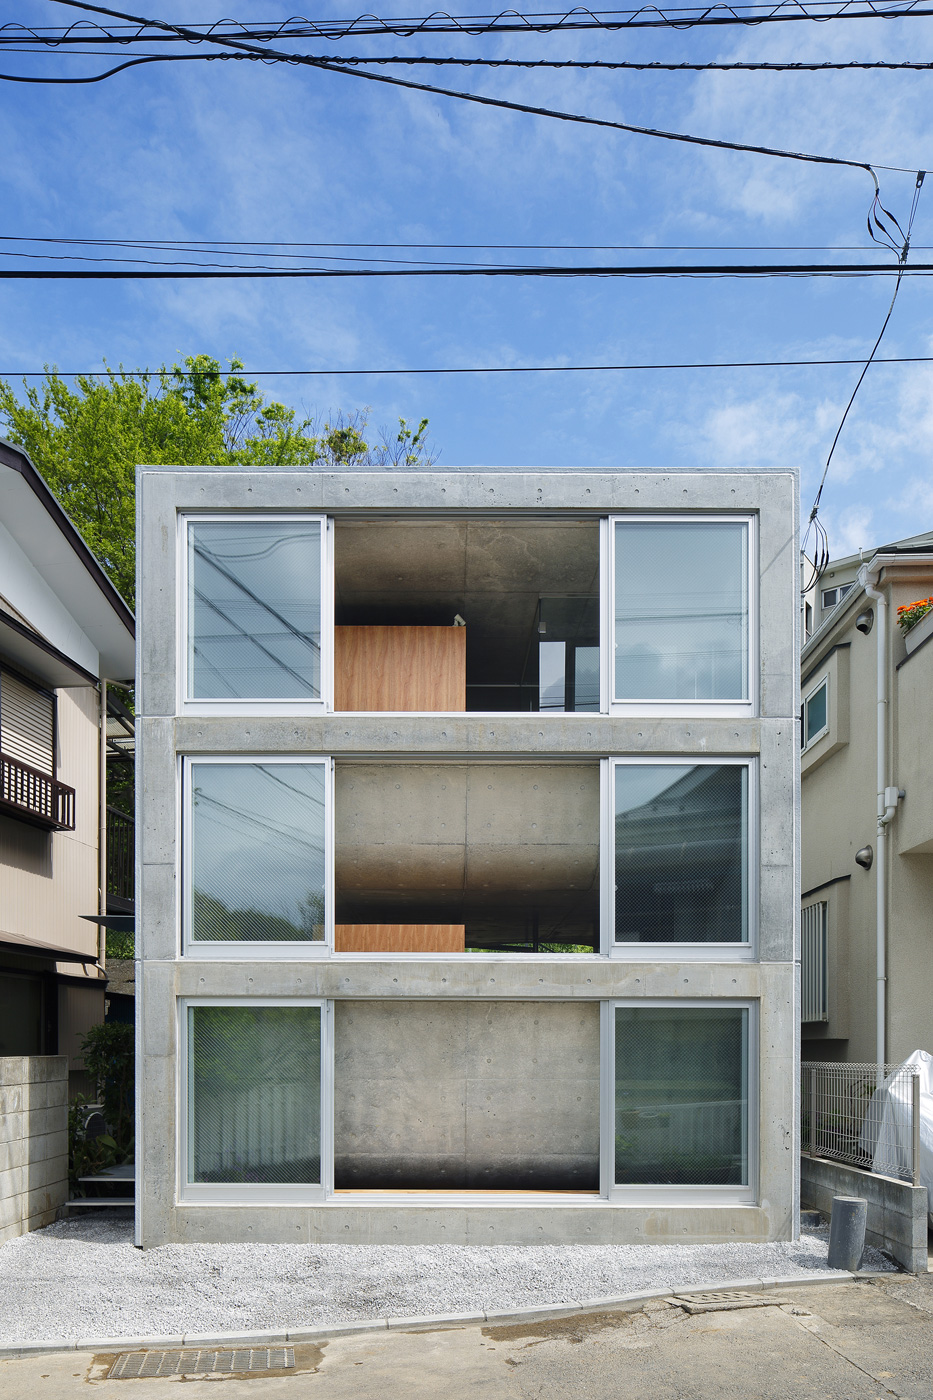 House in Byoubugaura / Takeshi Hosaka (28)